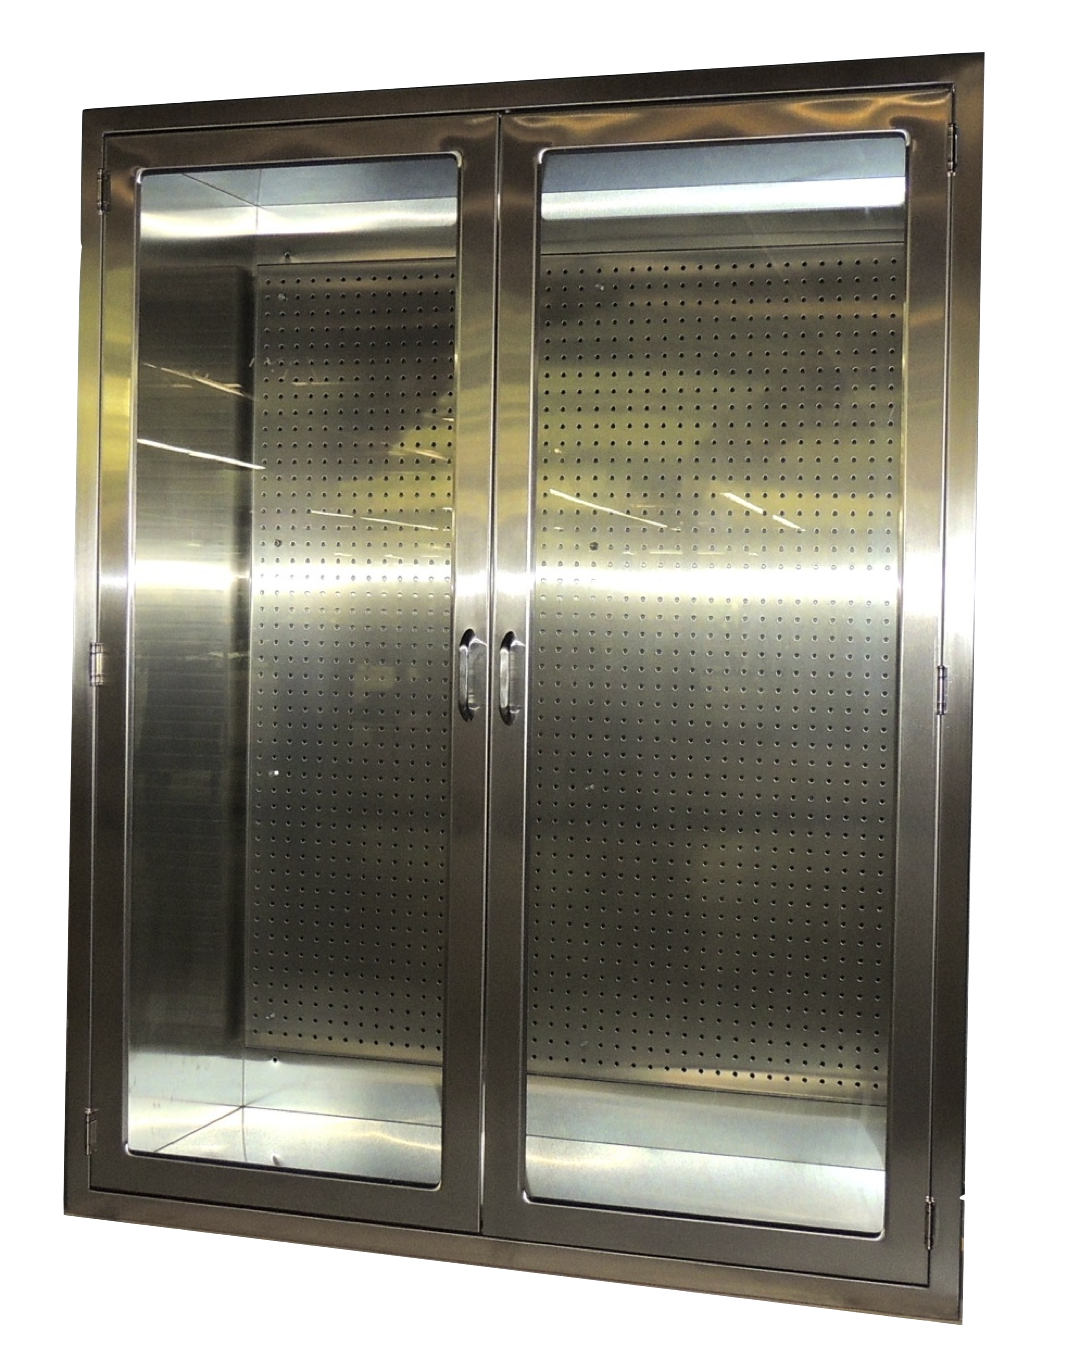 Recessed Hospital Stainless Steel Storage Cabinet With Pegboard And Gl Doors For Spd Or